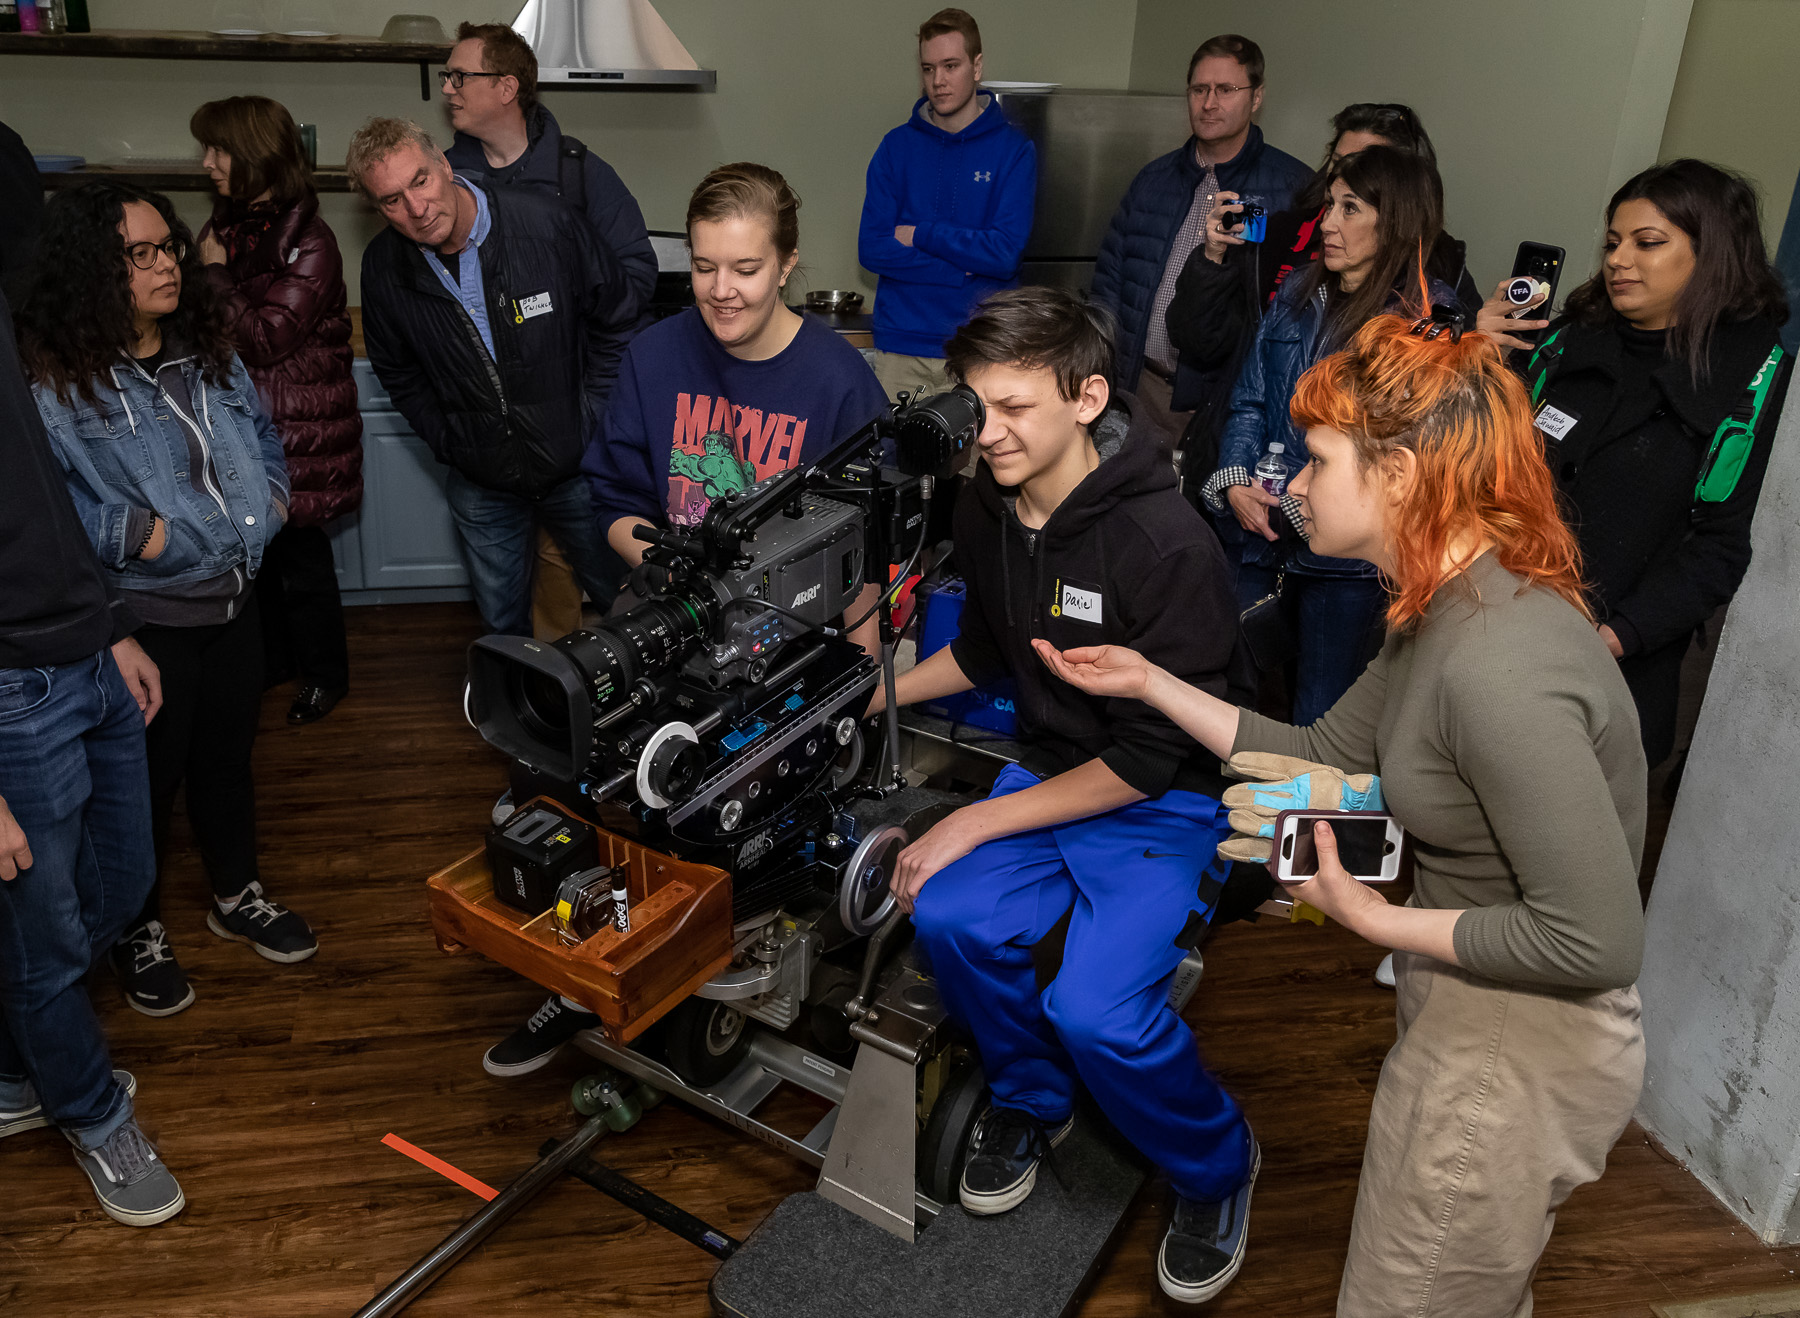 Attendees try out film equipment during the Chicago Ideas Week Lab: Behind the Scenes at Cinespace with DePaul University, Monday, Oct. 14, 2019, at Cinespace Chicago Film Studios on Chicago's West Side. (DePaul University/Jeff Carrion)